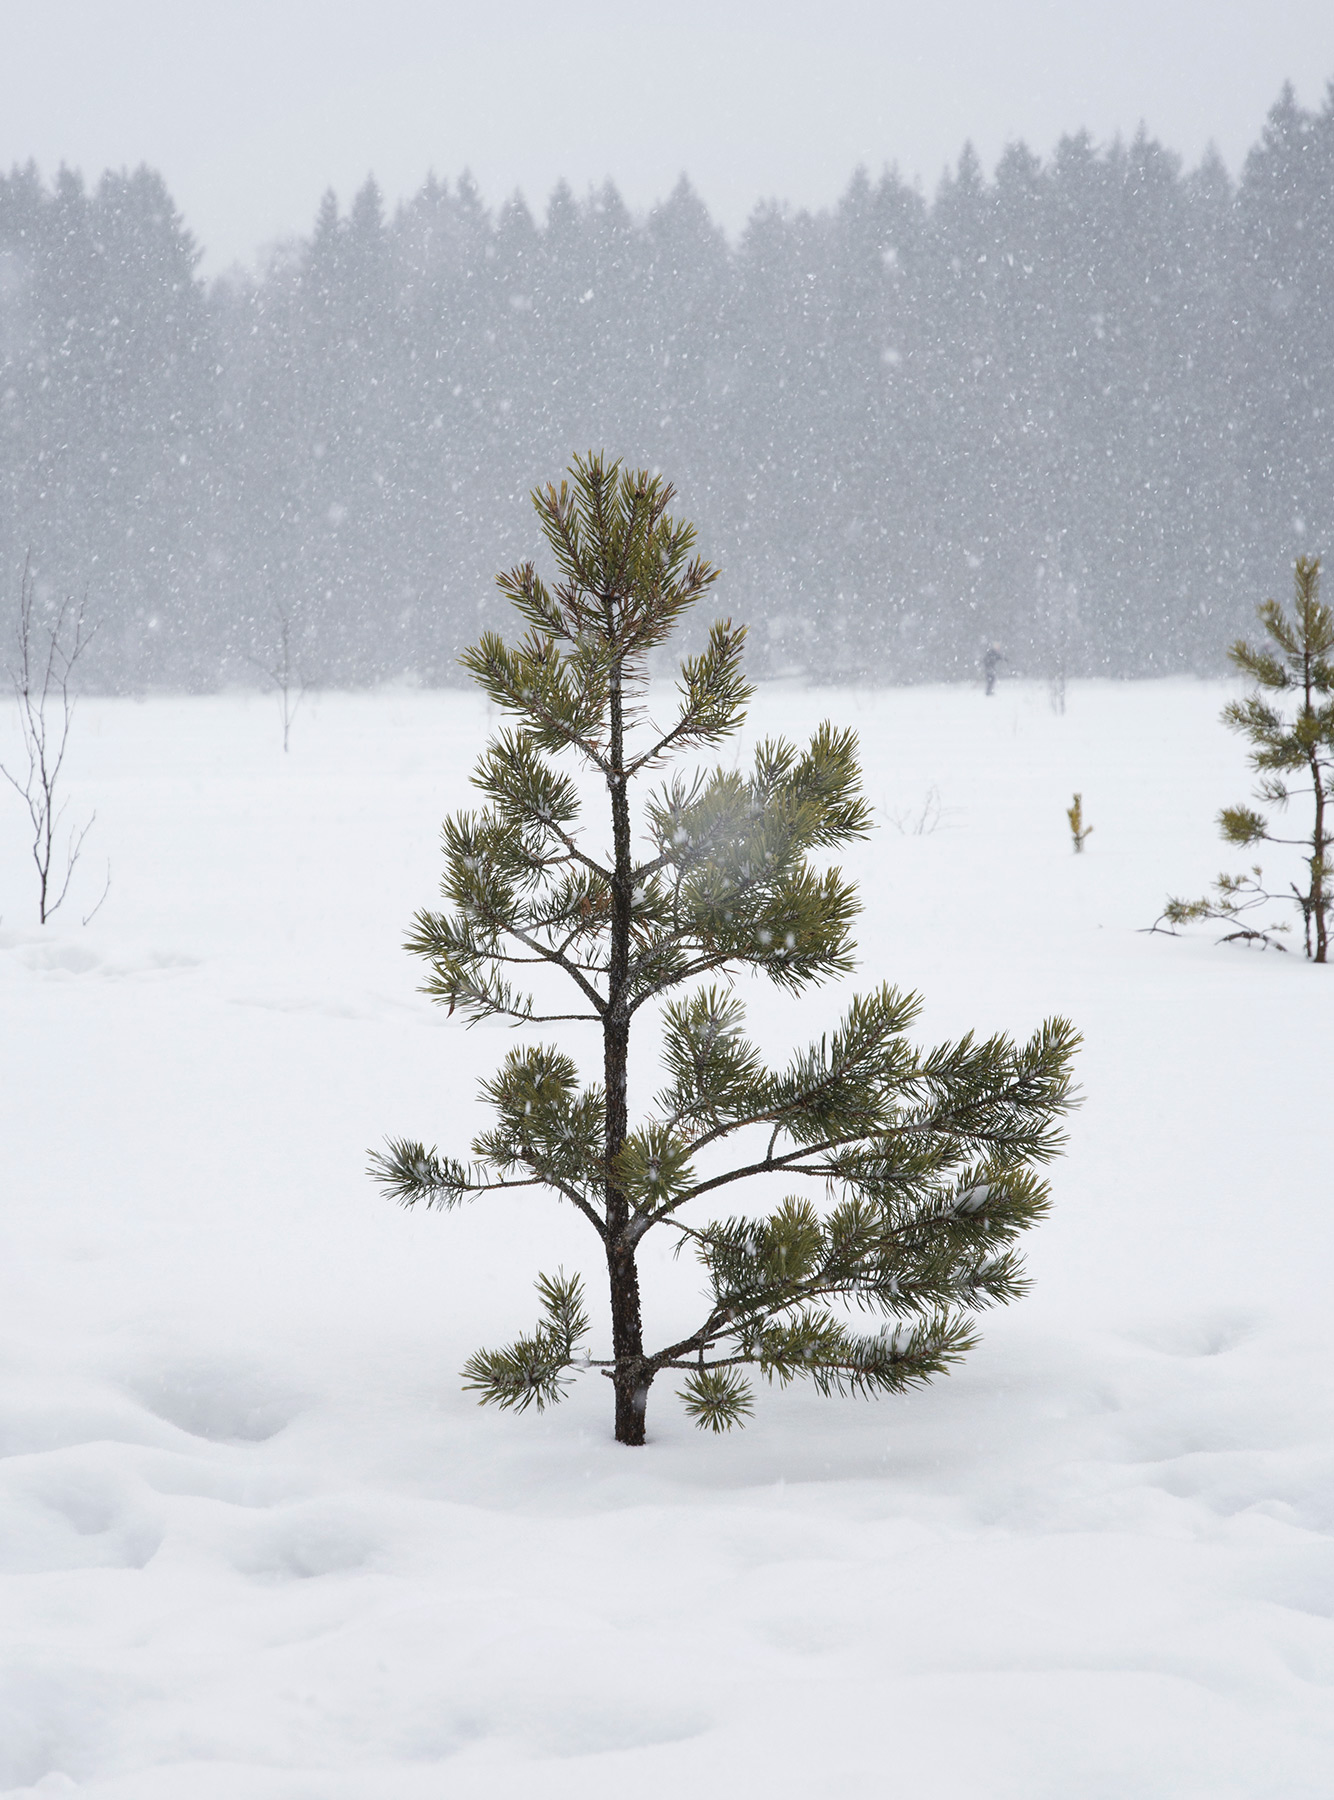 Single pine tree in the snow